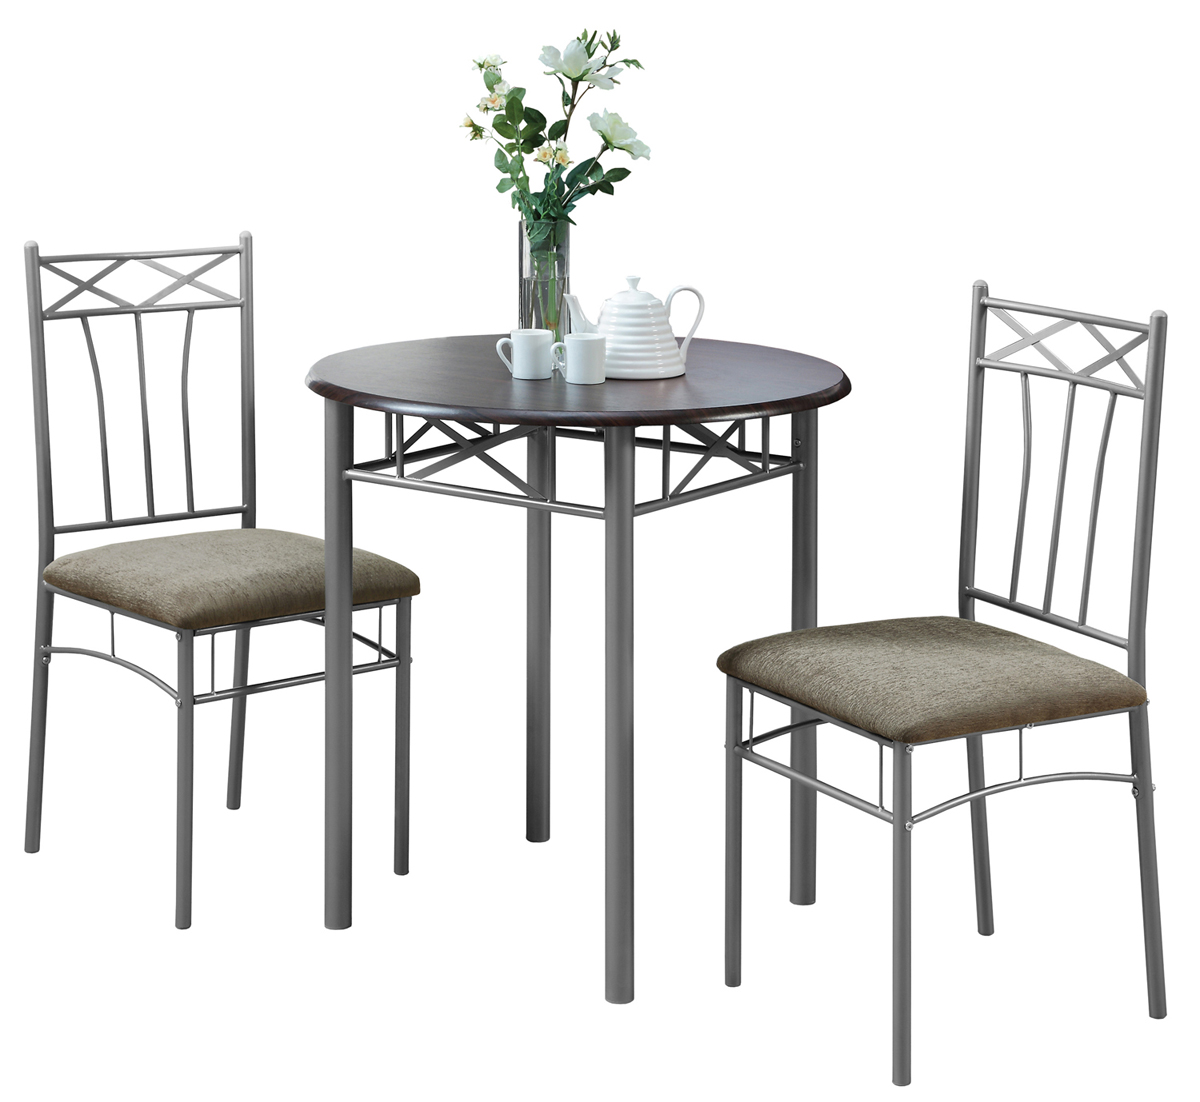 Dining Set - 3 Pieces Set / Cappuccino / Silver Metal